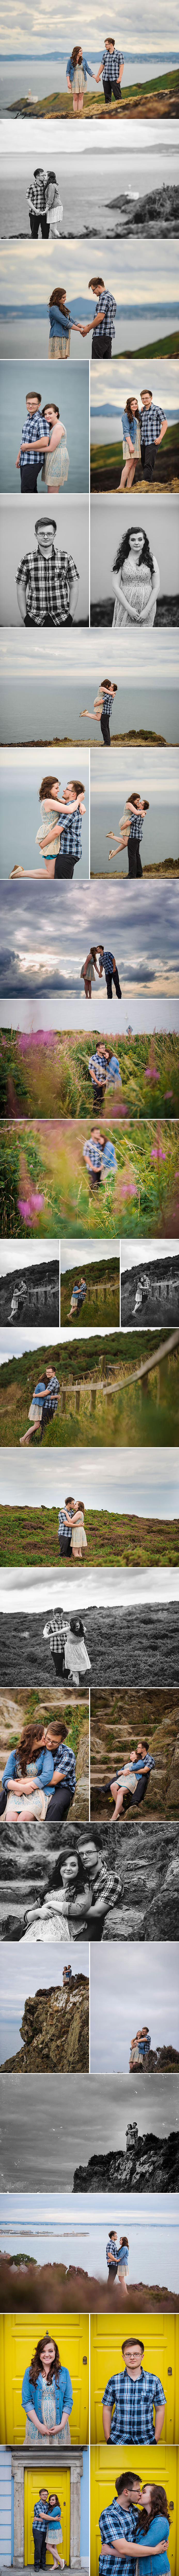 K + K | Couple in Love | Howth Engagement Session | Dublin Wedding Photography 2